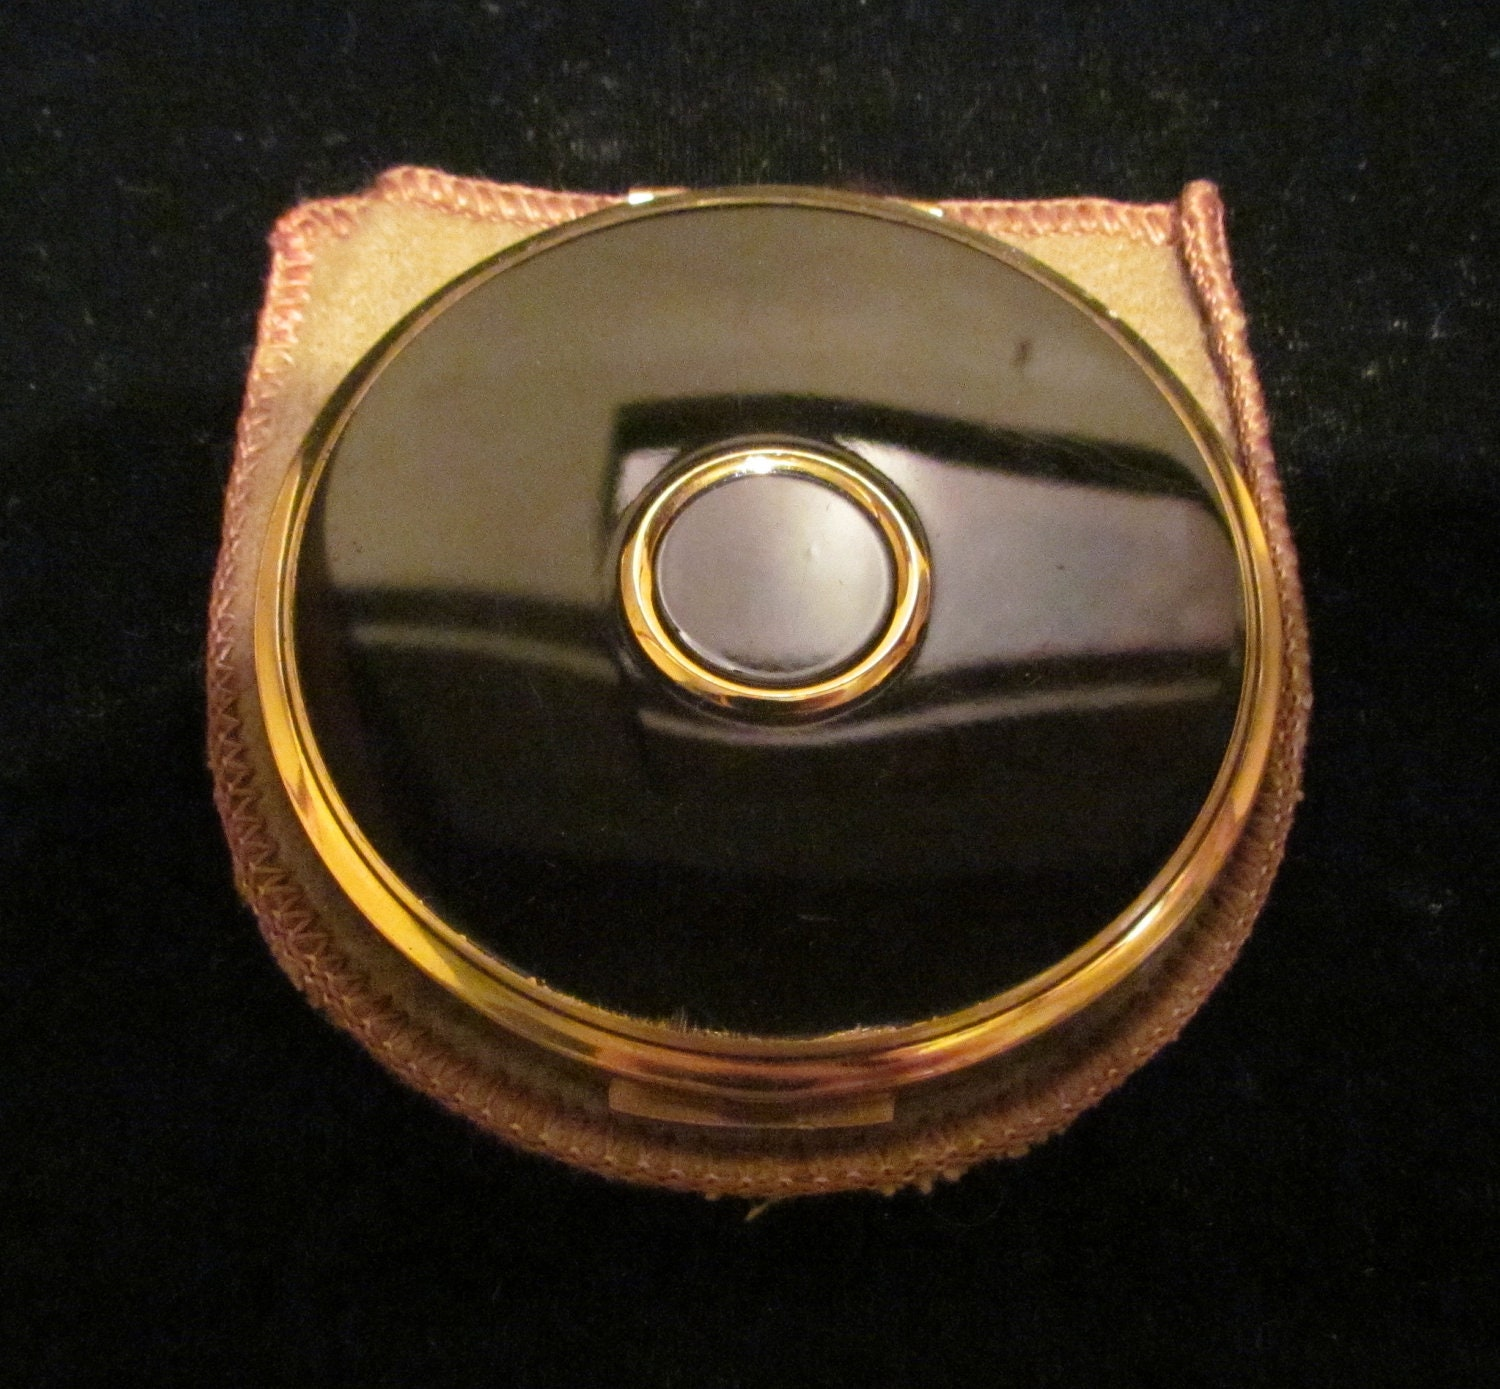 Vintage charles of the ritz compact